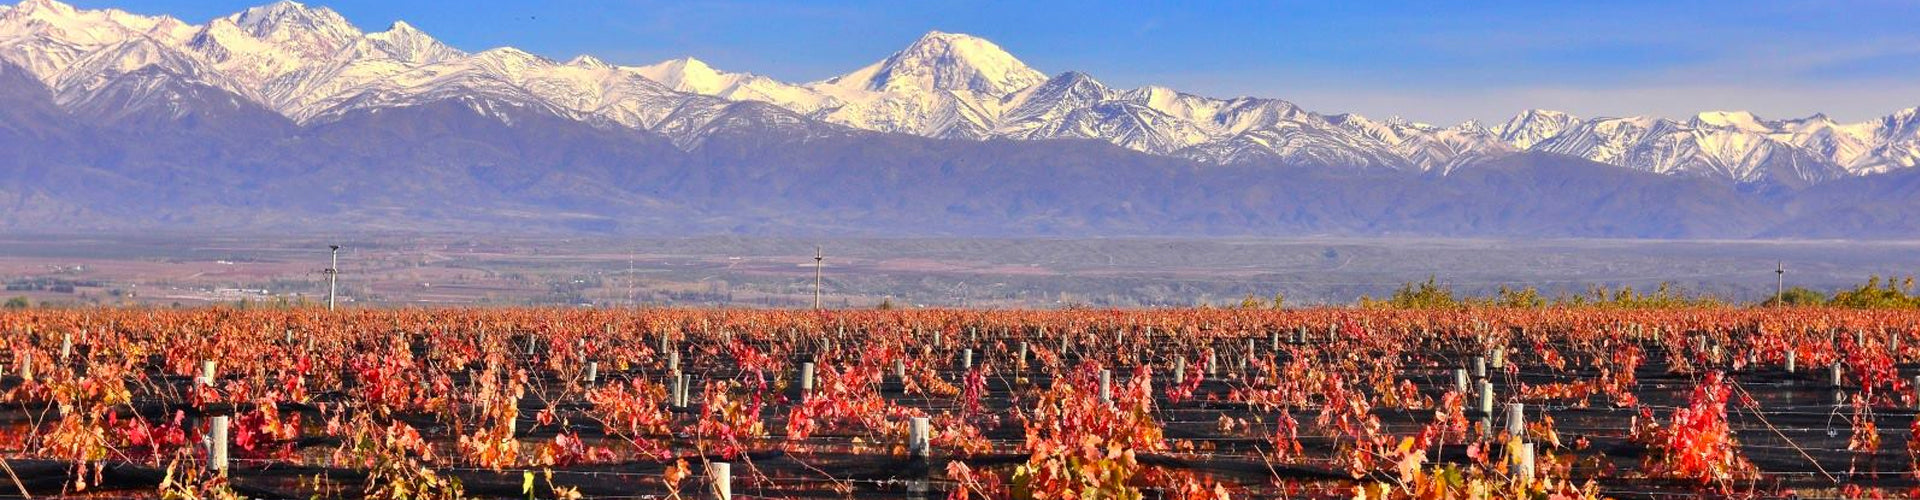 Masi Tupungato Vineyards in Mendoza's Uco Valley